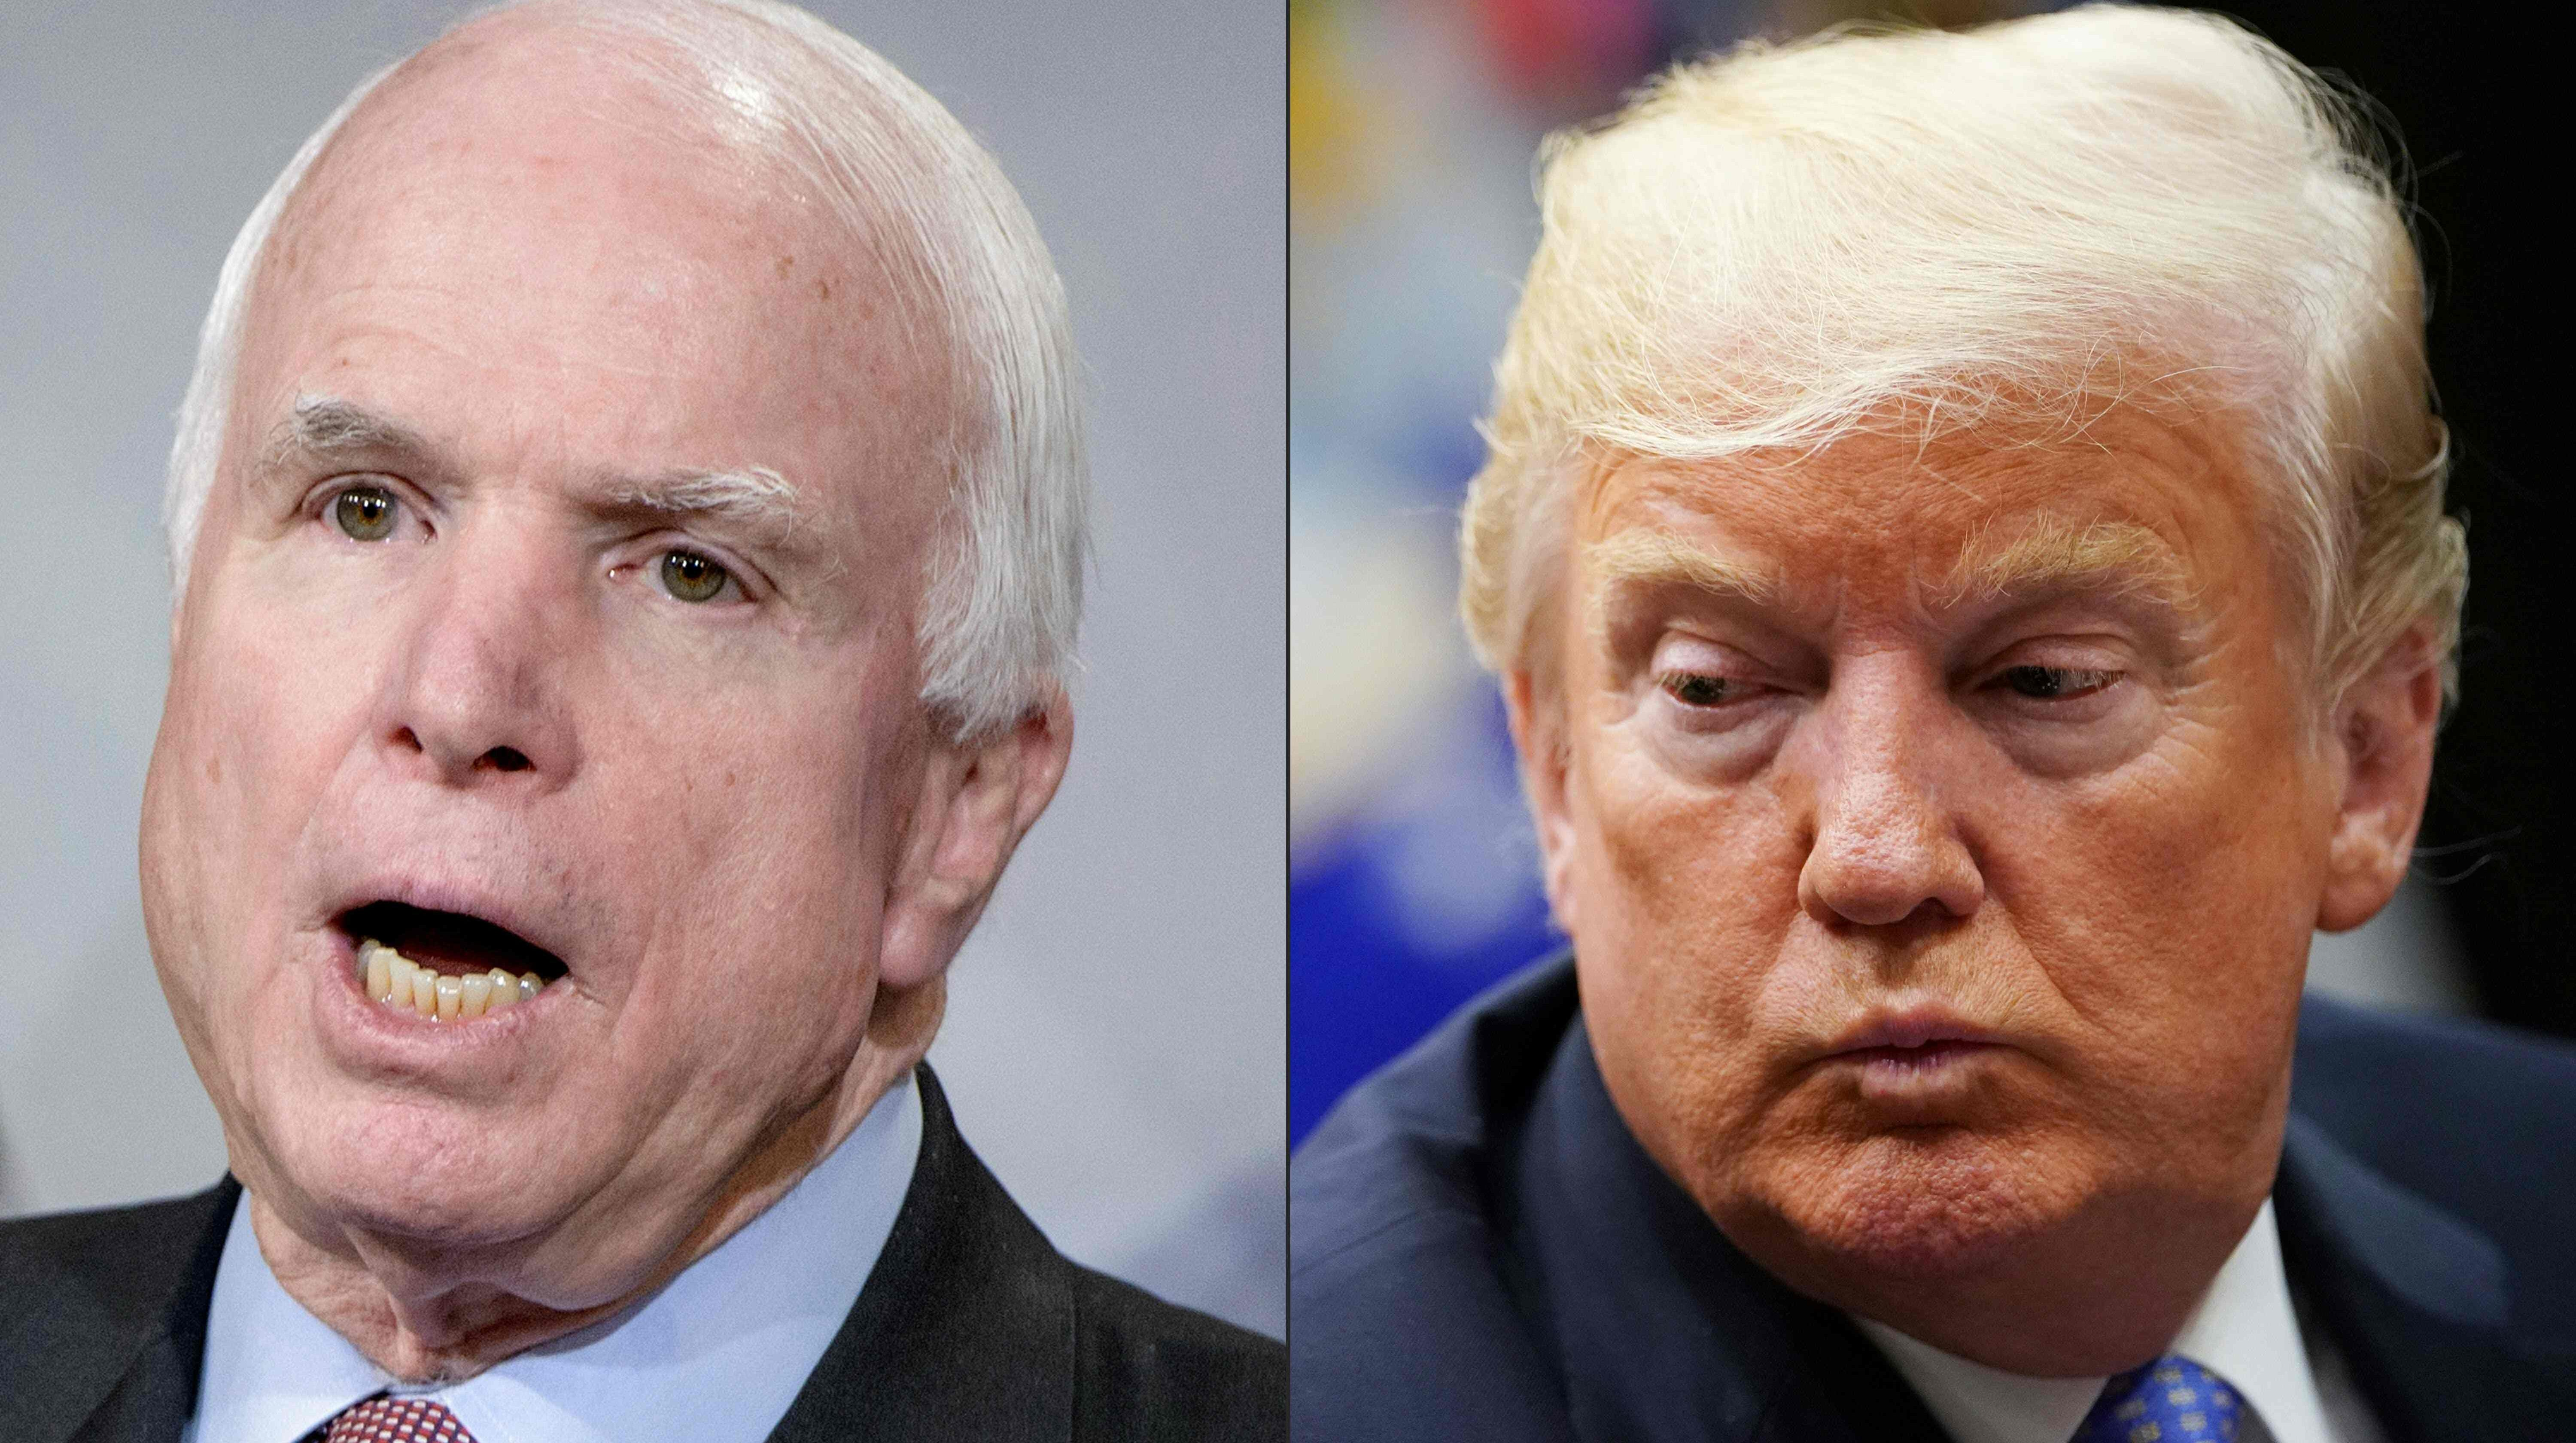 (COMBO) This combination of pictures created on August 24, 2018 shows US Senator John McCain and US President Donald Trump. - One of John McCain's final wishes, as he struggled against a devastating brain cancer, could not have been more clear: He made it known that he did not want Donald Trump to attend his funeral. US senator John McCain, a celebrated war hero known for reaching across the aisle in an increasingly divided America, died Saturday after losing a battle to brain cancer, his office said. He was 81. (Photos by BRENDAN SMIALOWSKI and MANDEL NGAN / AFP)BRENDAN SMIALOWSKI,MANDEL NGAN/AFP/Getty Images ORIG FILE ID: AFP_18K93M